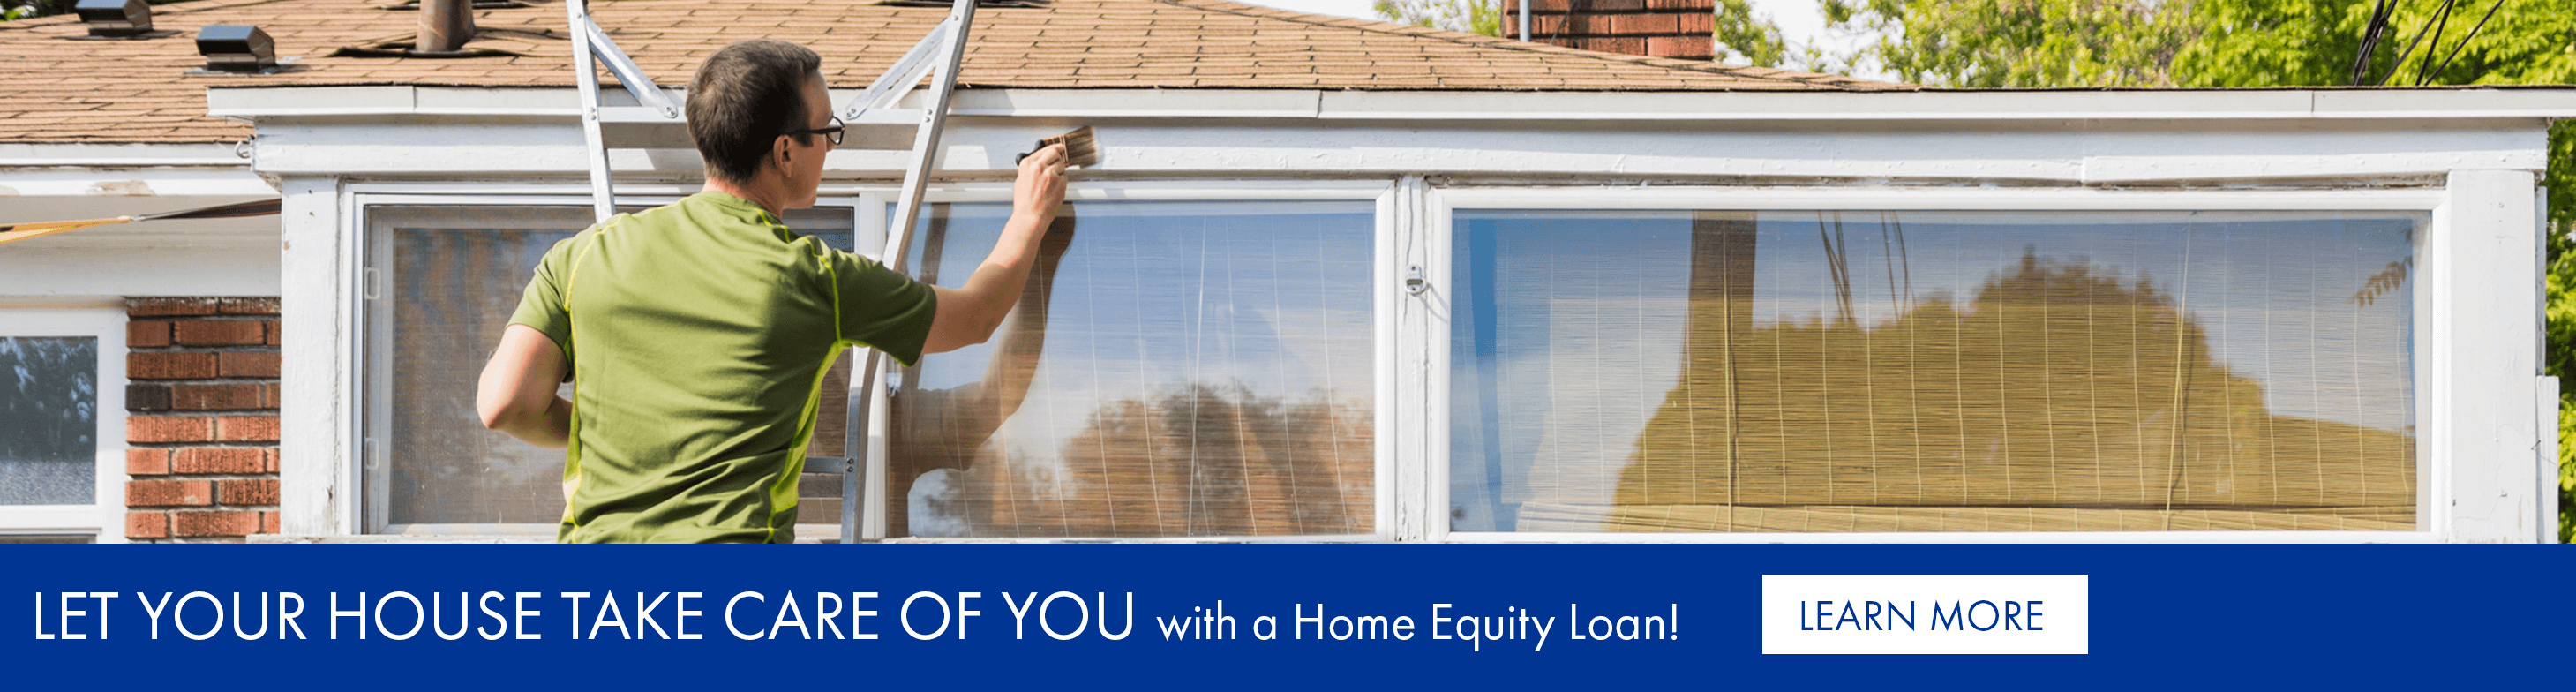 Let your house take care of you with a home equity loan!